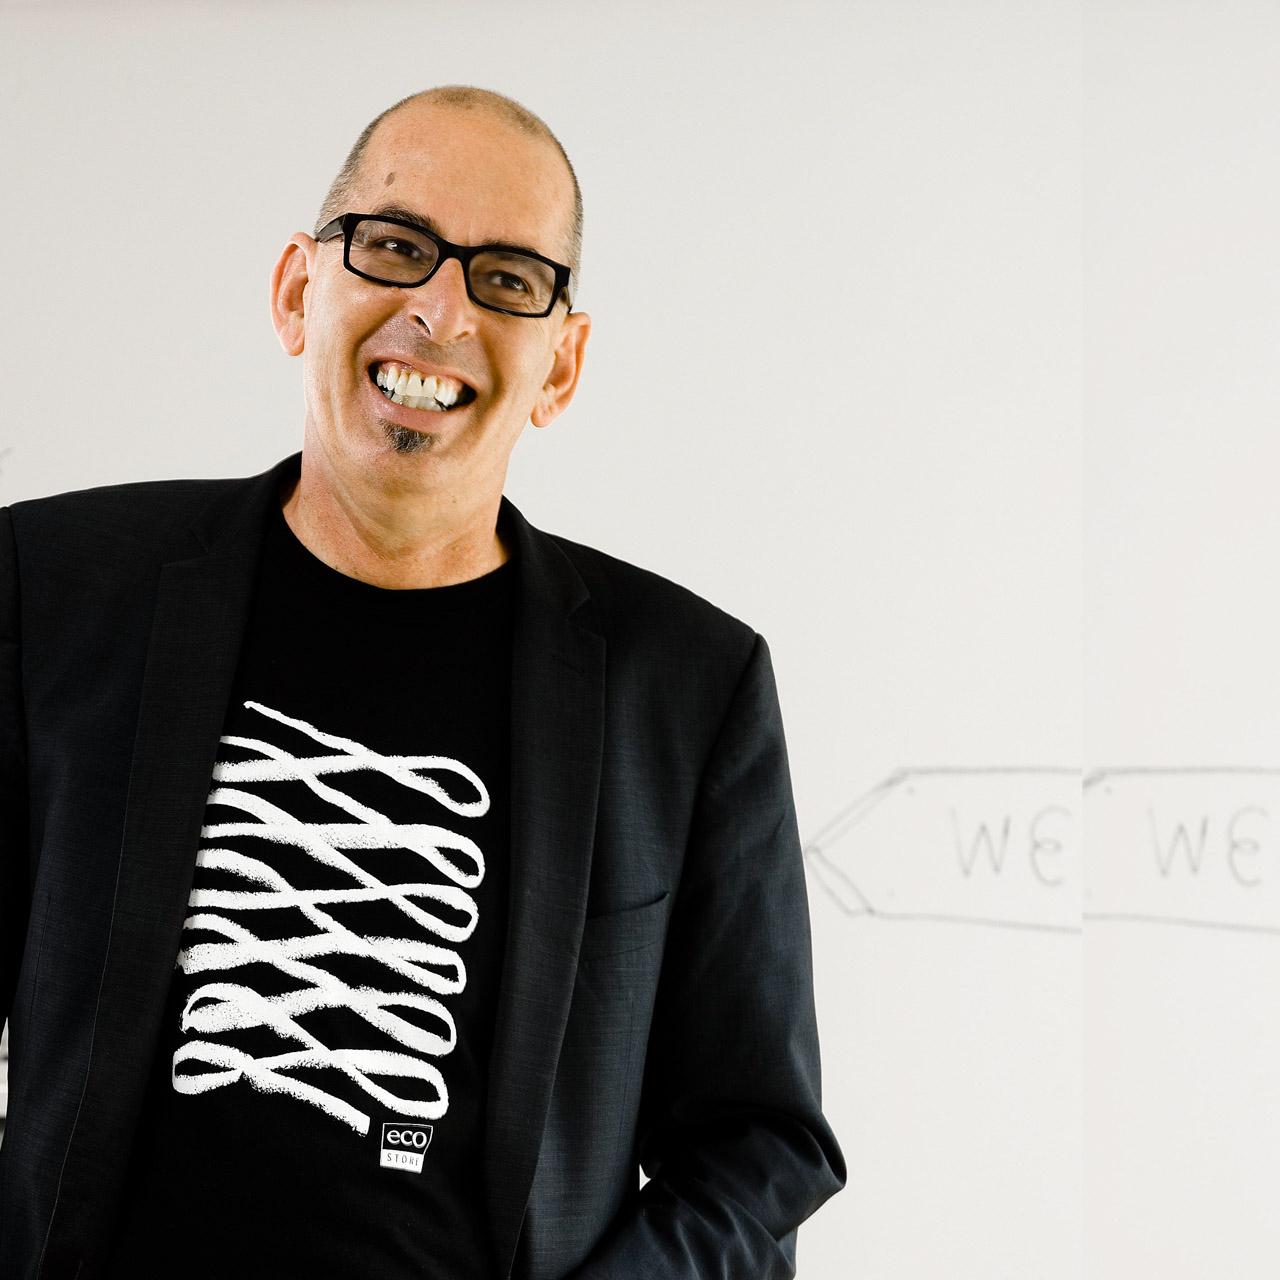 A picture of Malcolm Rands